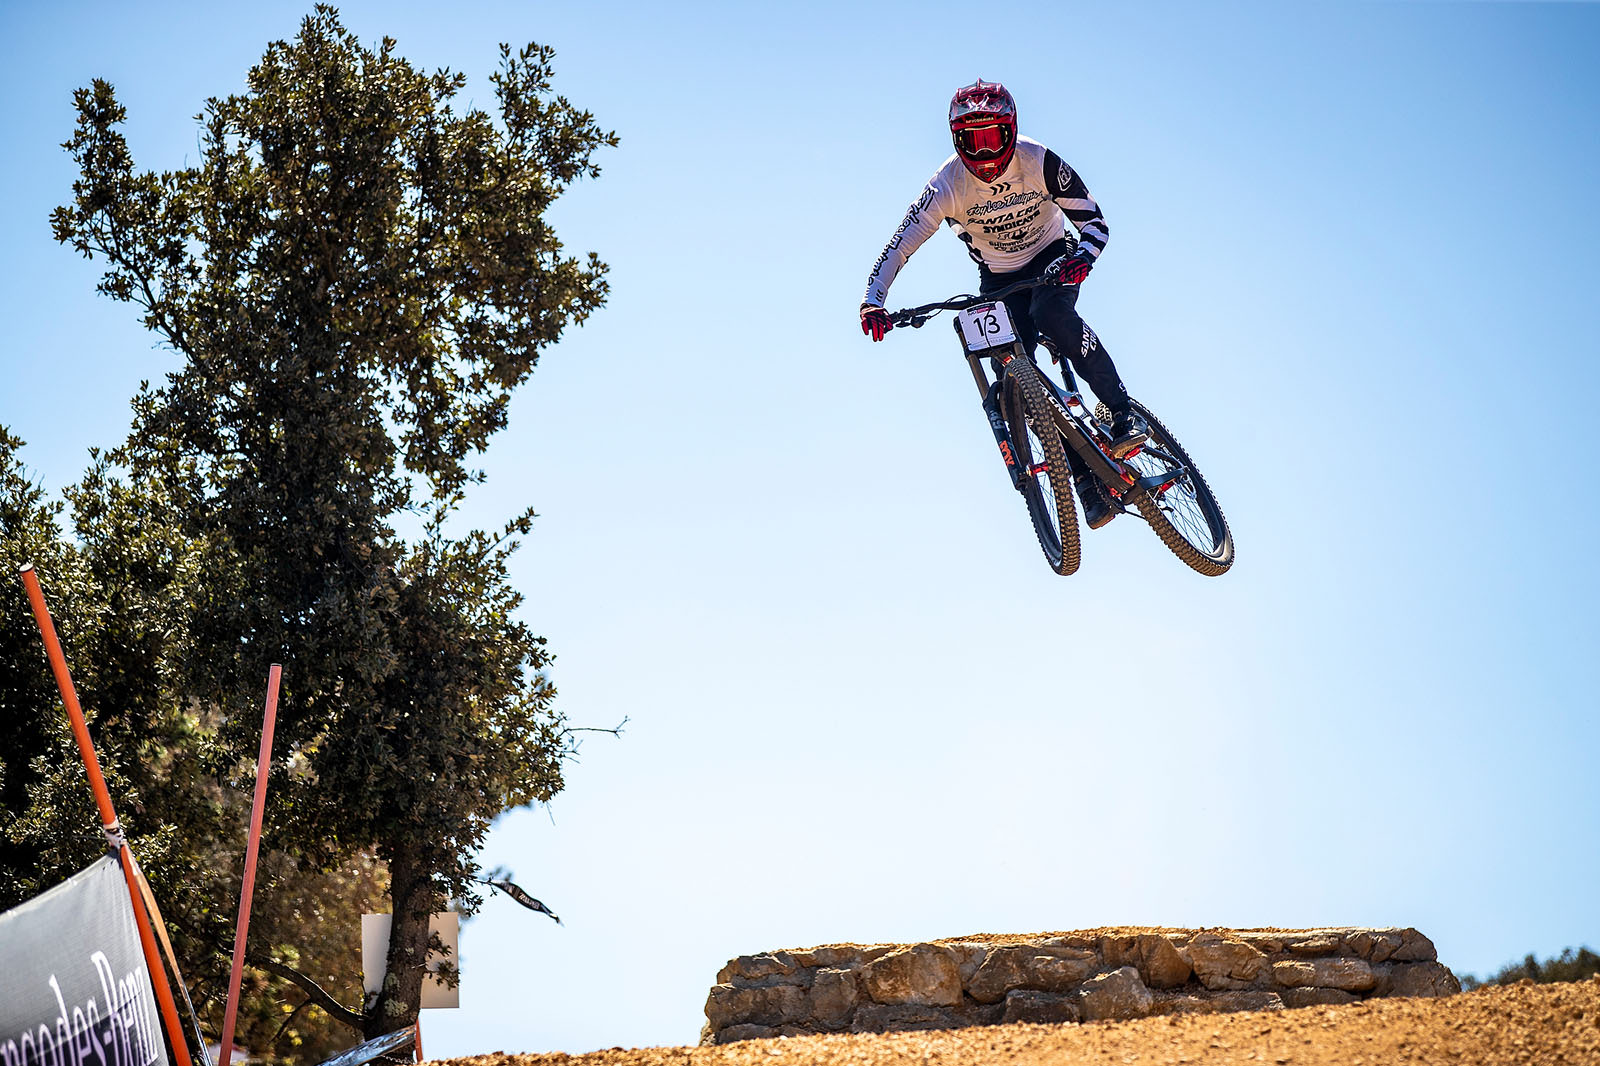 Santa Cruz Bicycles - Luca Shaw Airing Out the Jumps at the Losinj World Cup DH